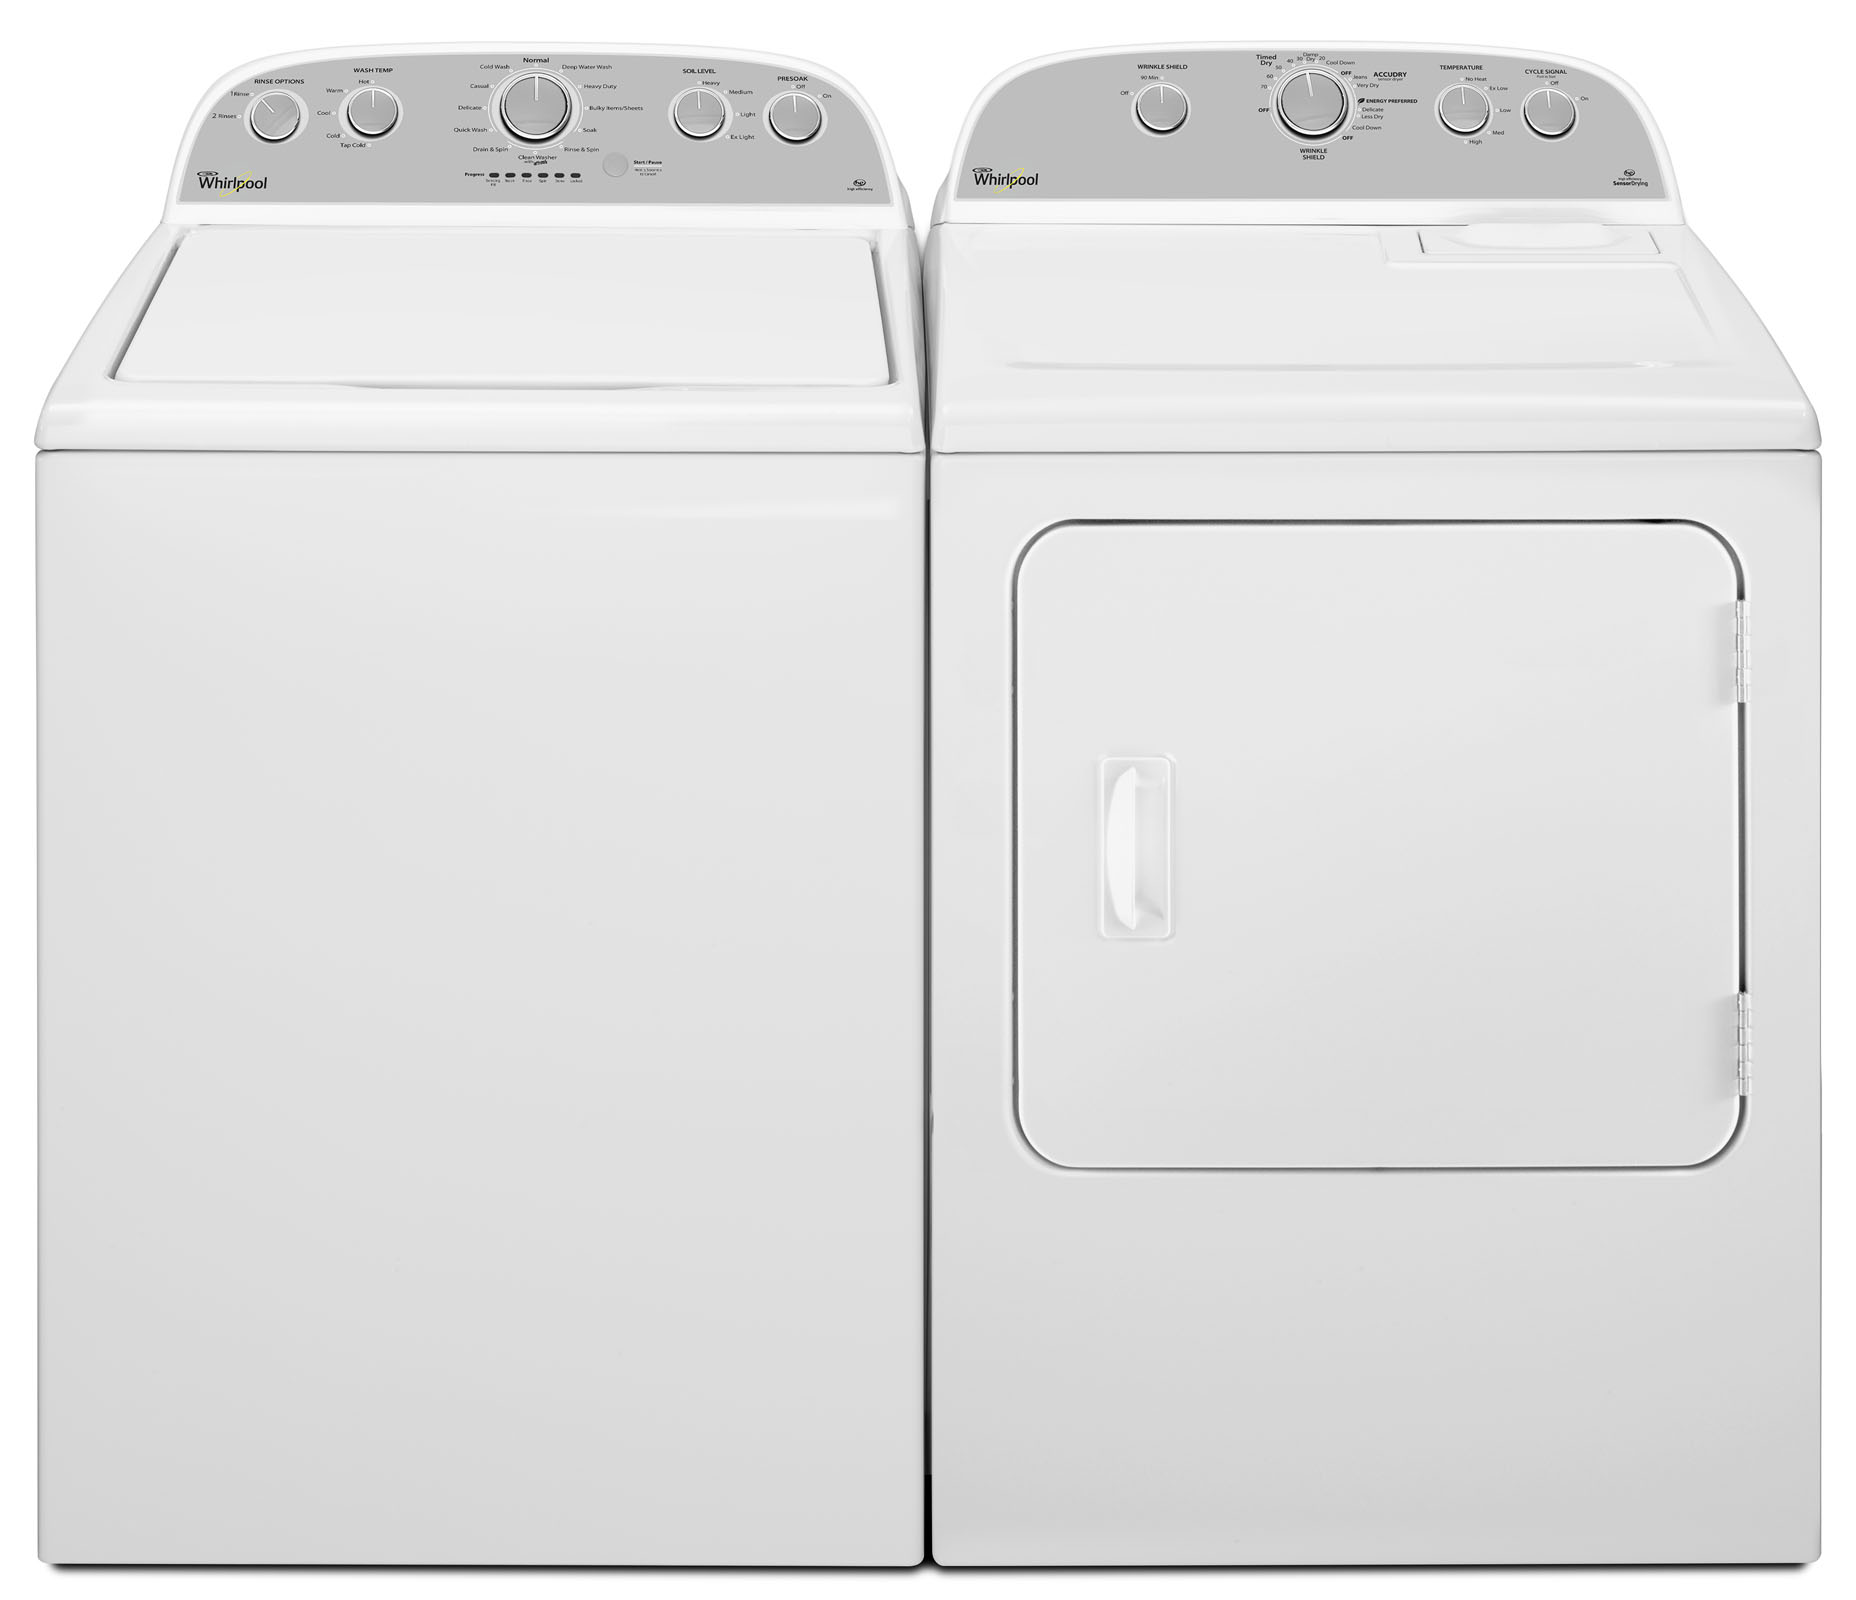 Whirlpool WED4975EW 7.0 cu. ft. Electric Long Vent Dryer - White